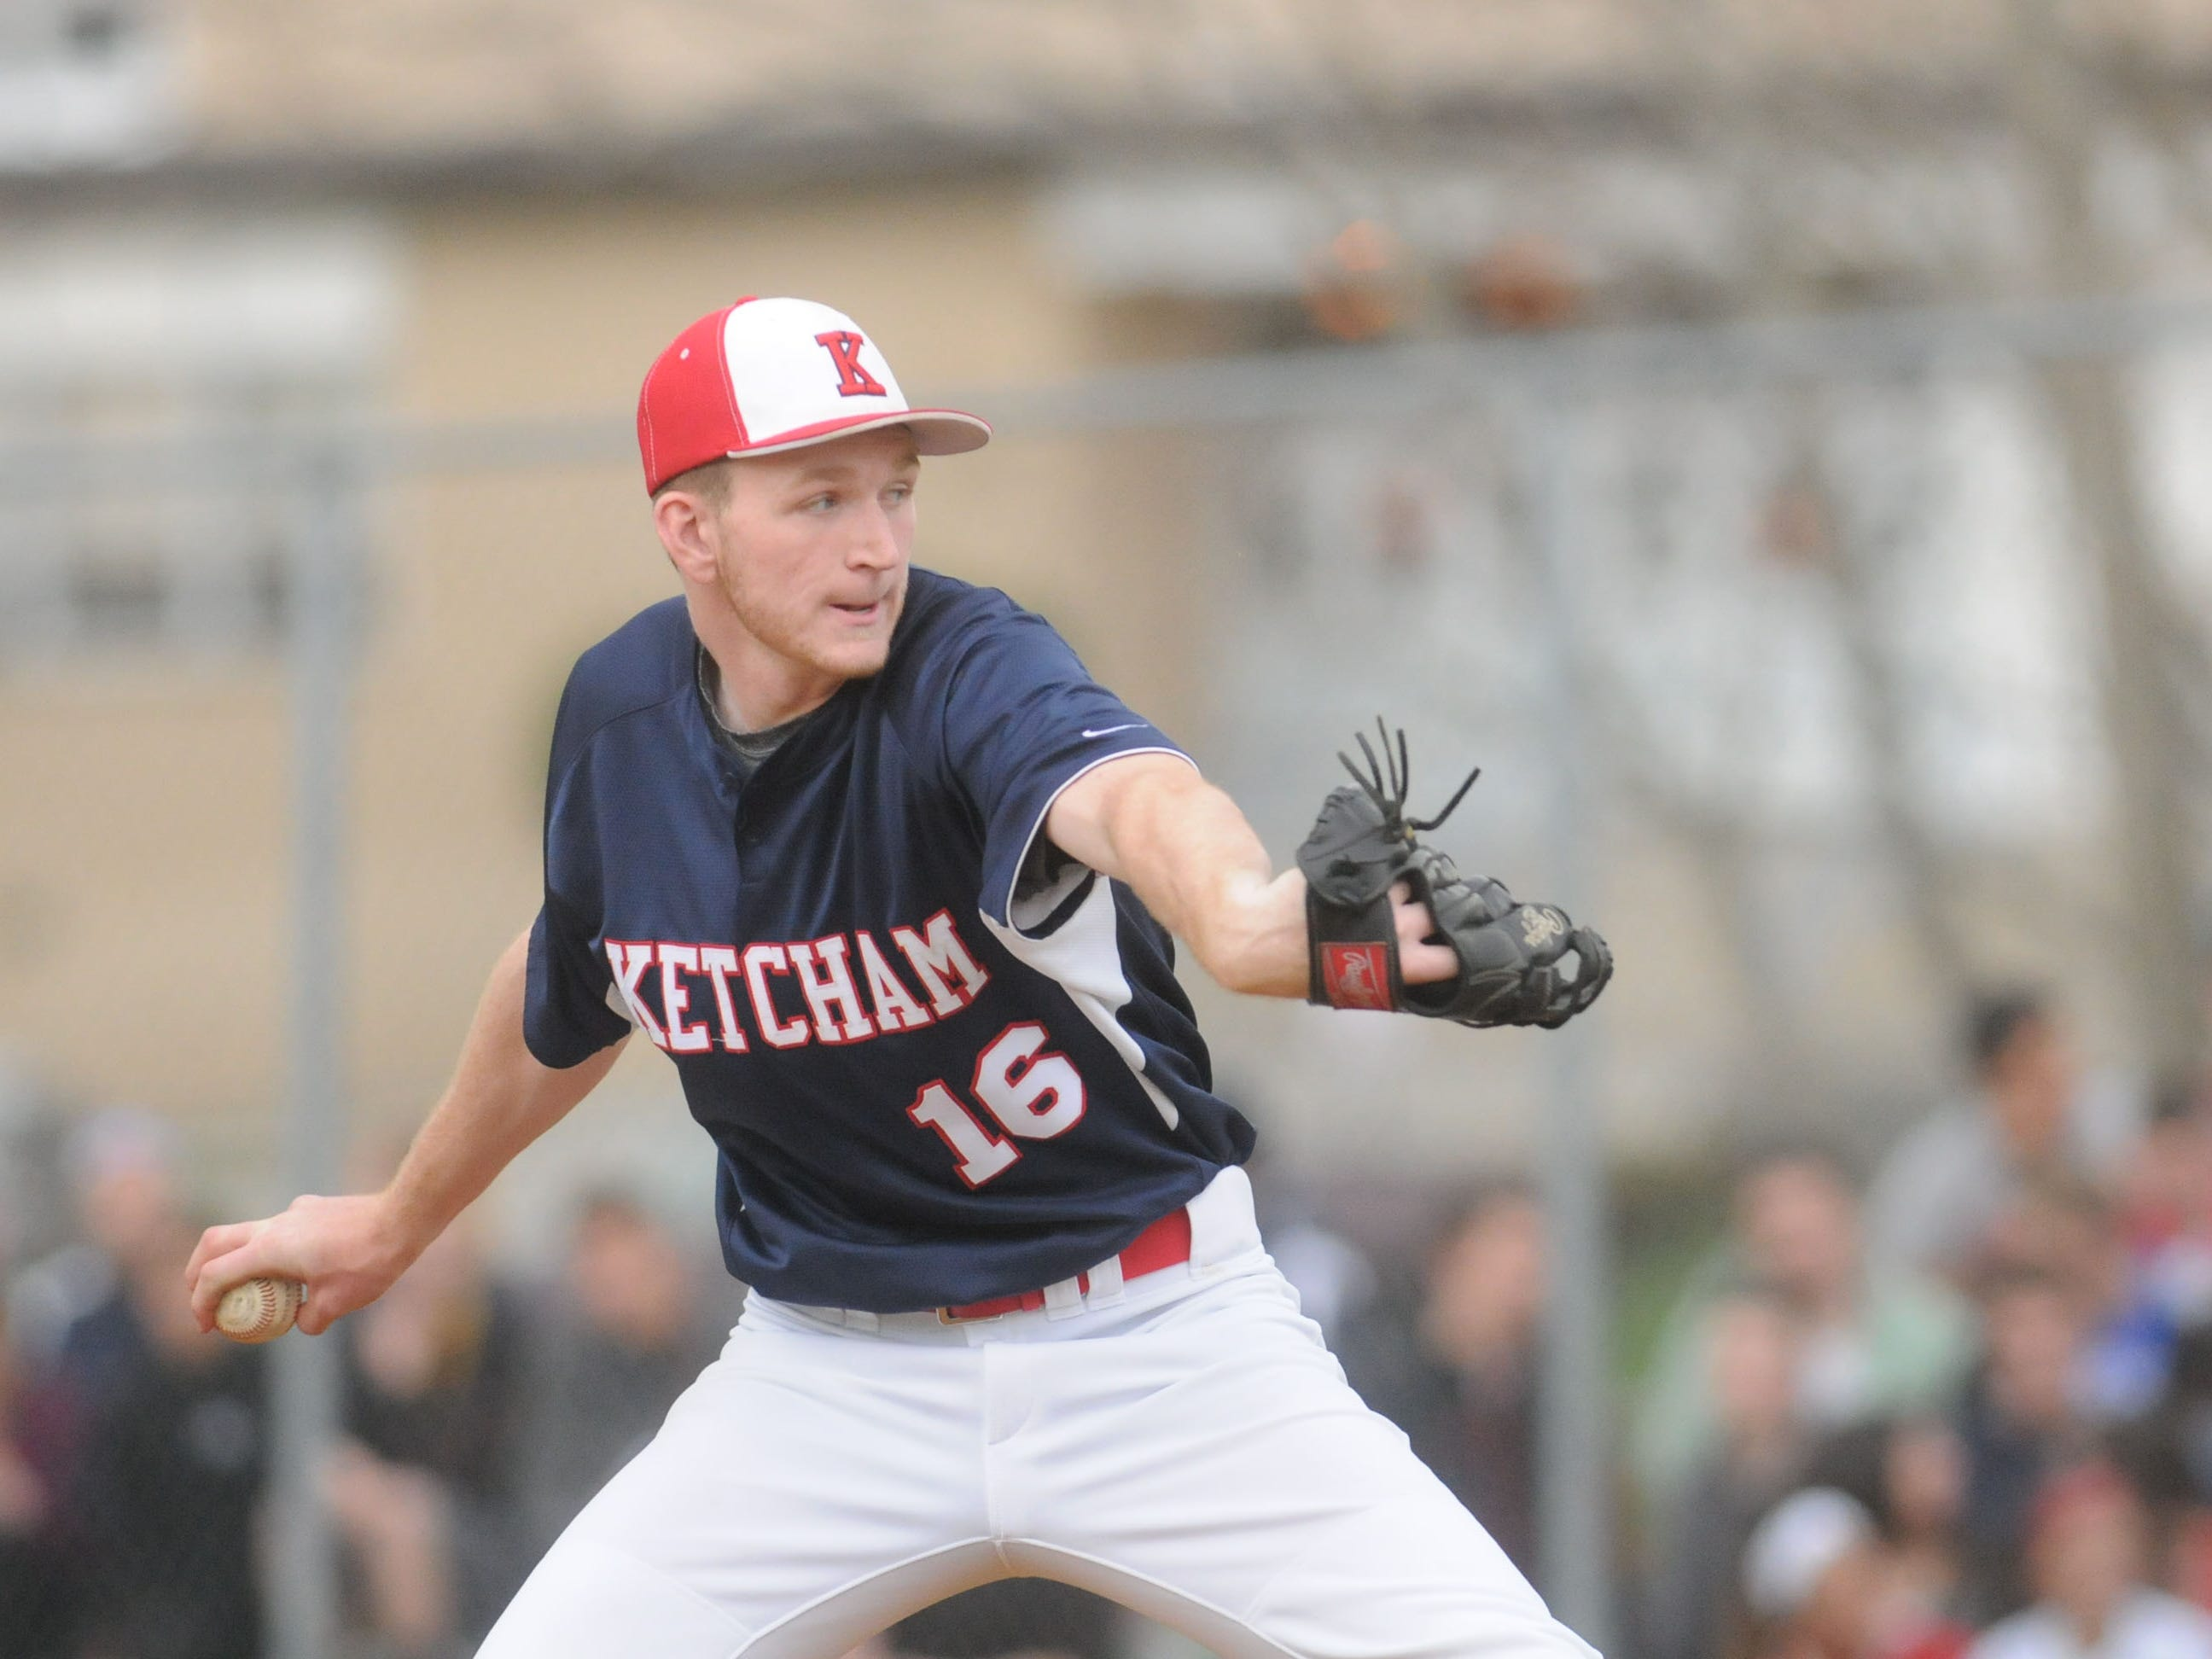 Ketcham's Dylan D'Anna winds up a pitch in Friday's game against Arlington.